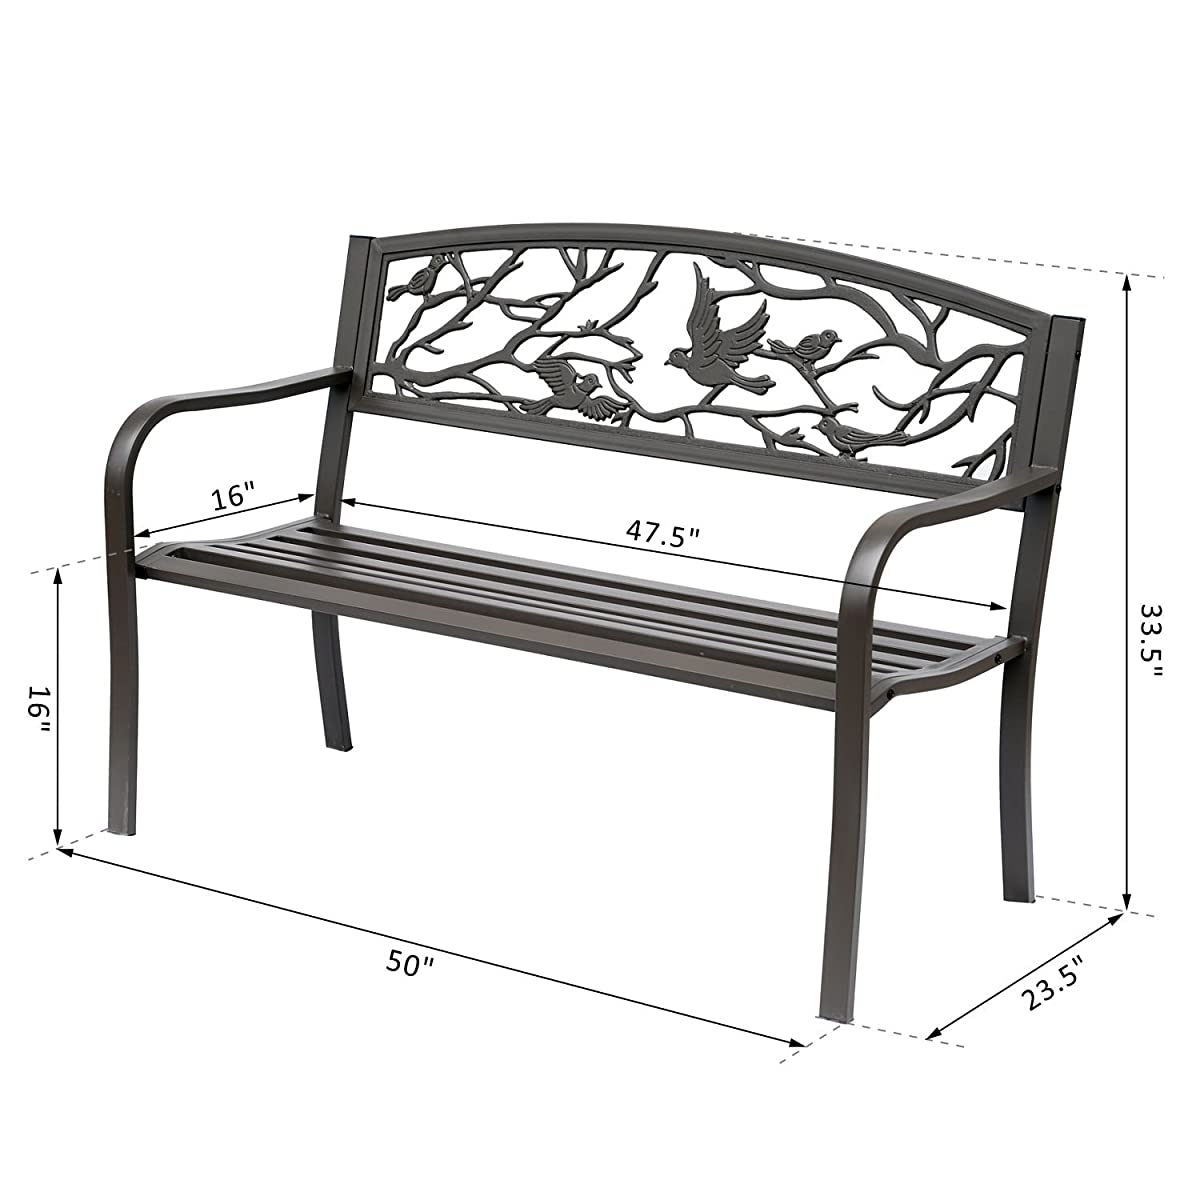 "Outsunny 50"" Cast Iron Vintage Bird Pattern Garden Patio Bench"